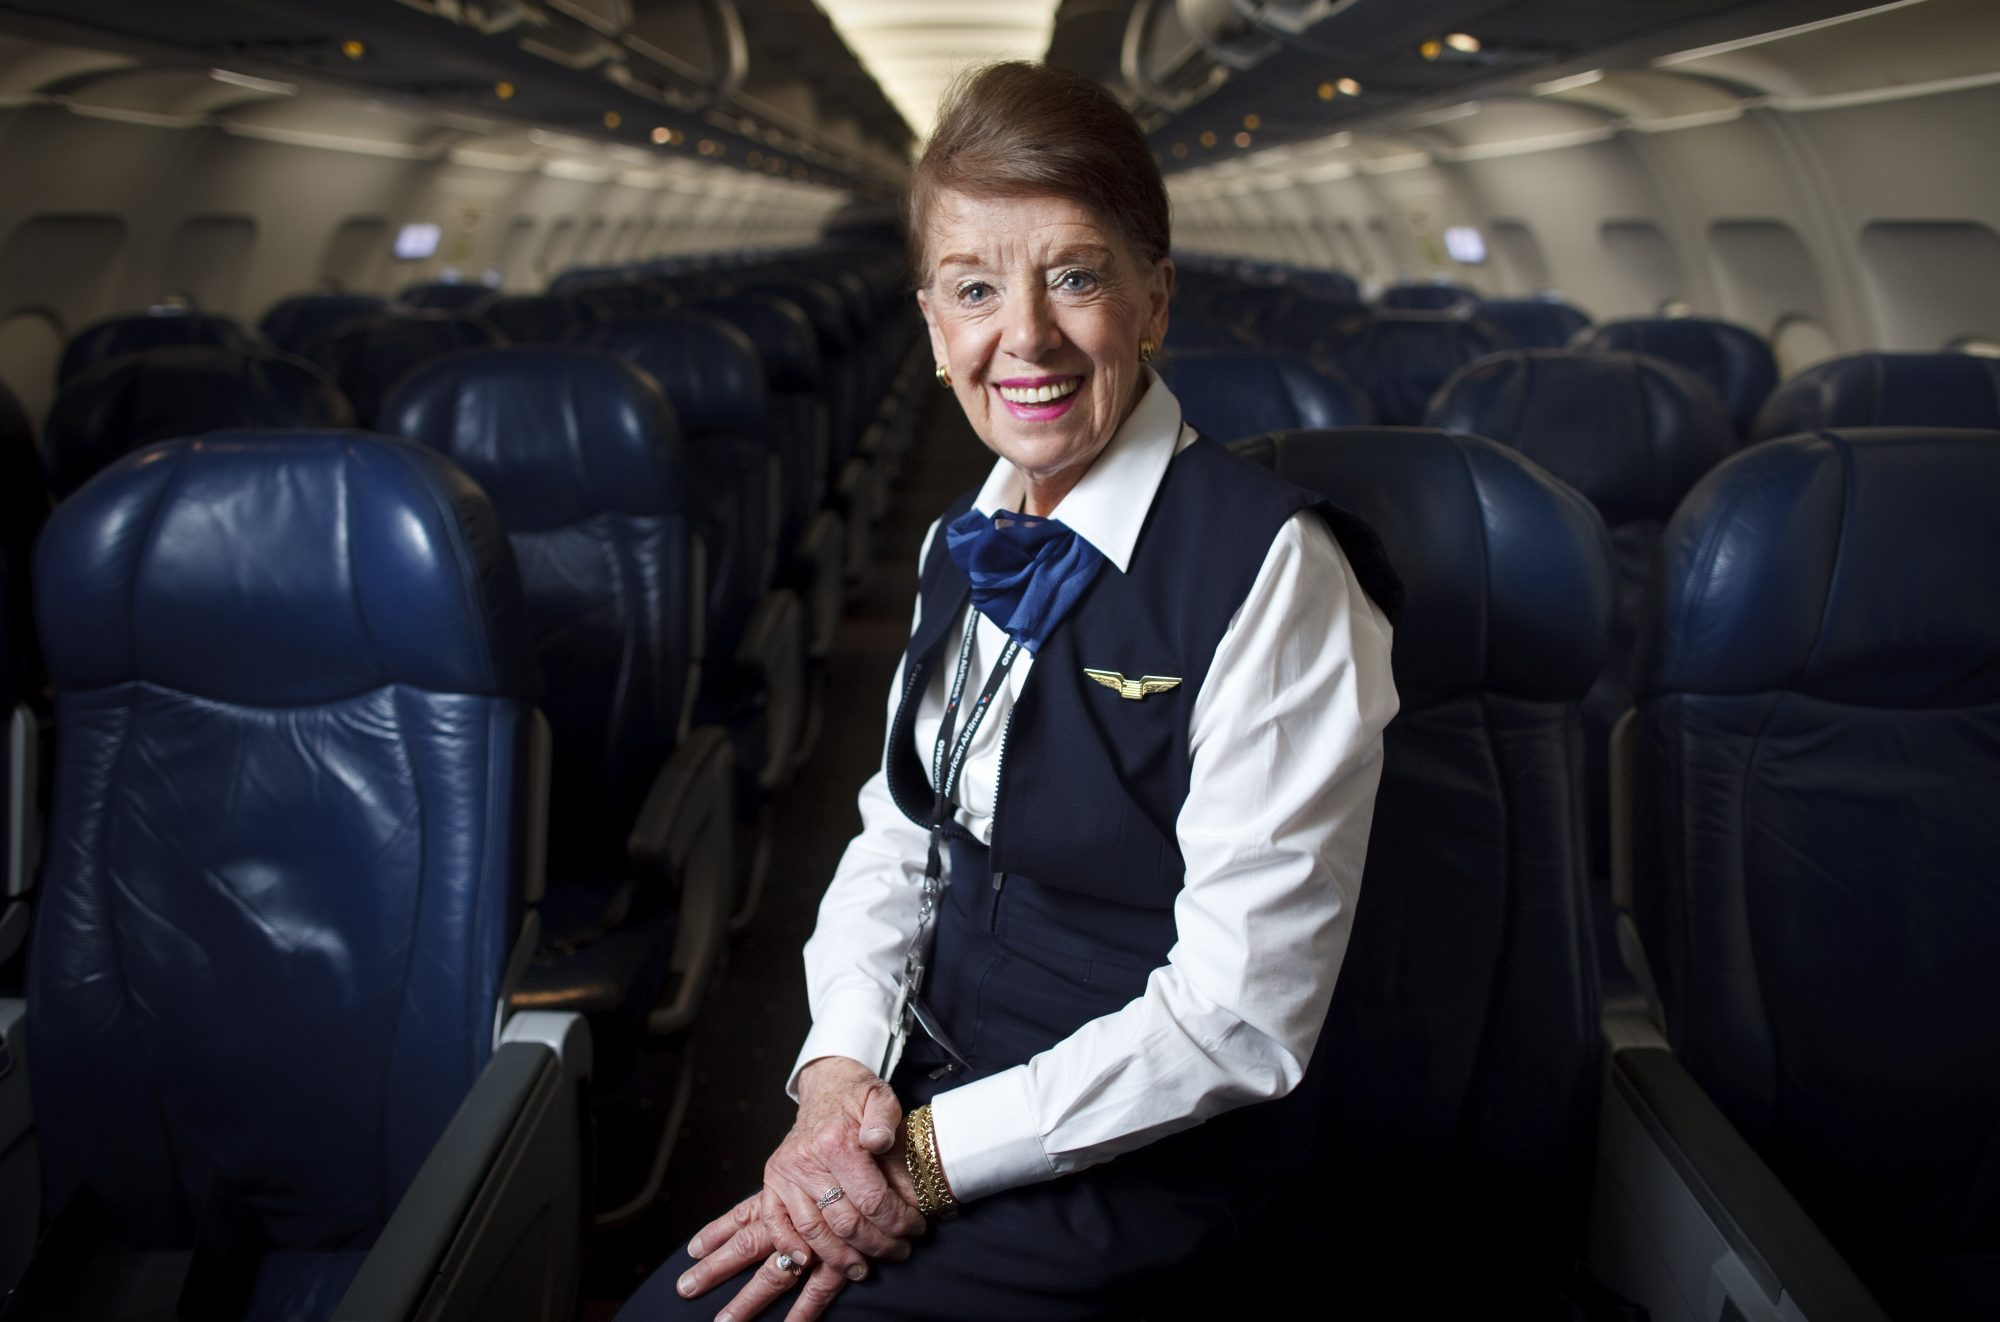 Bette Nash Flight Attendant